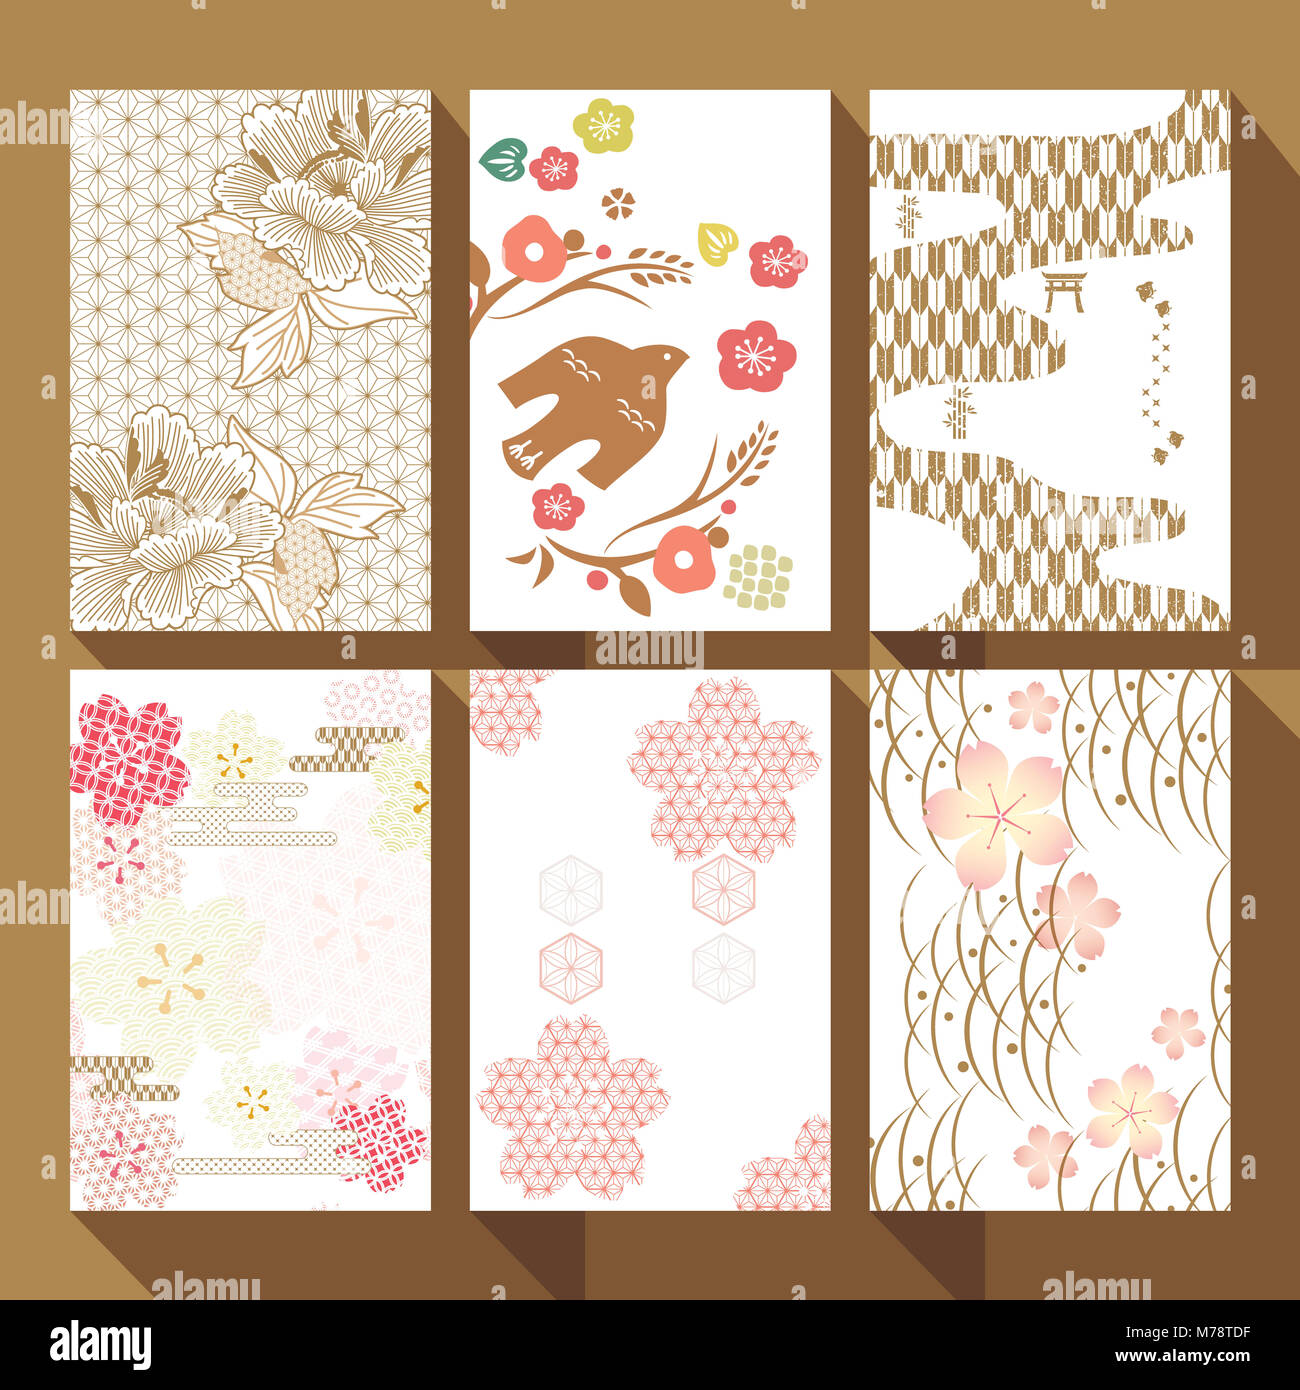 Japanese pattern vector gold geometric background cherry blossom japanese pattern vector gold geometric background cherry blossom flower bird river wave leaves elements invitation card wedding ceremony post stopboris Gallery